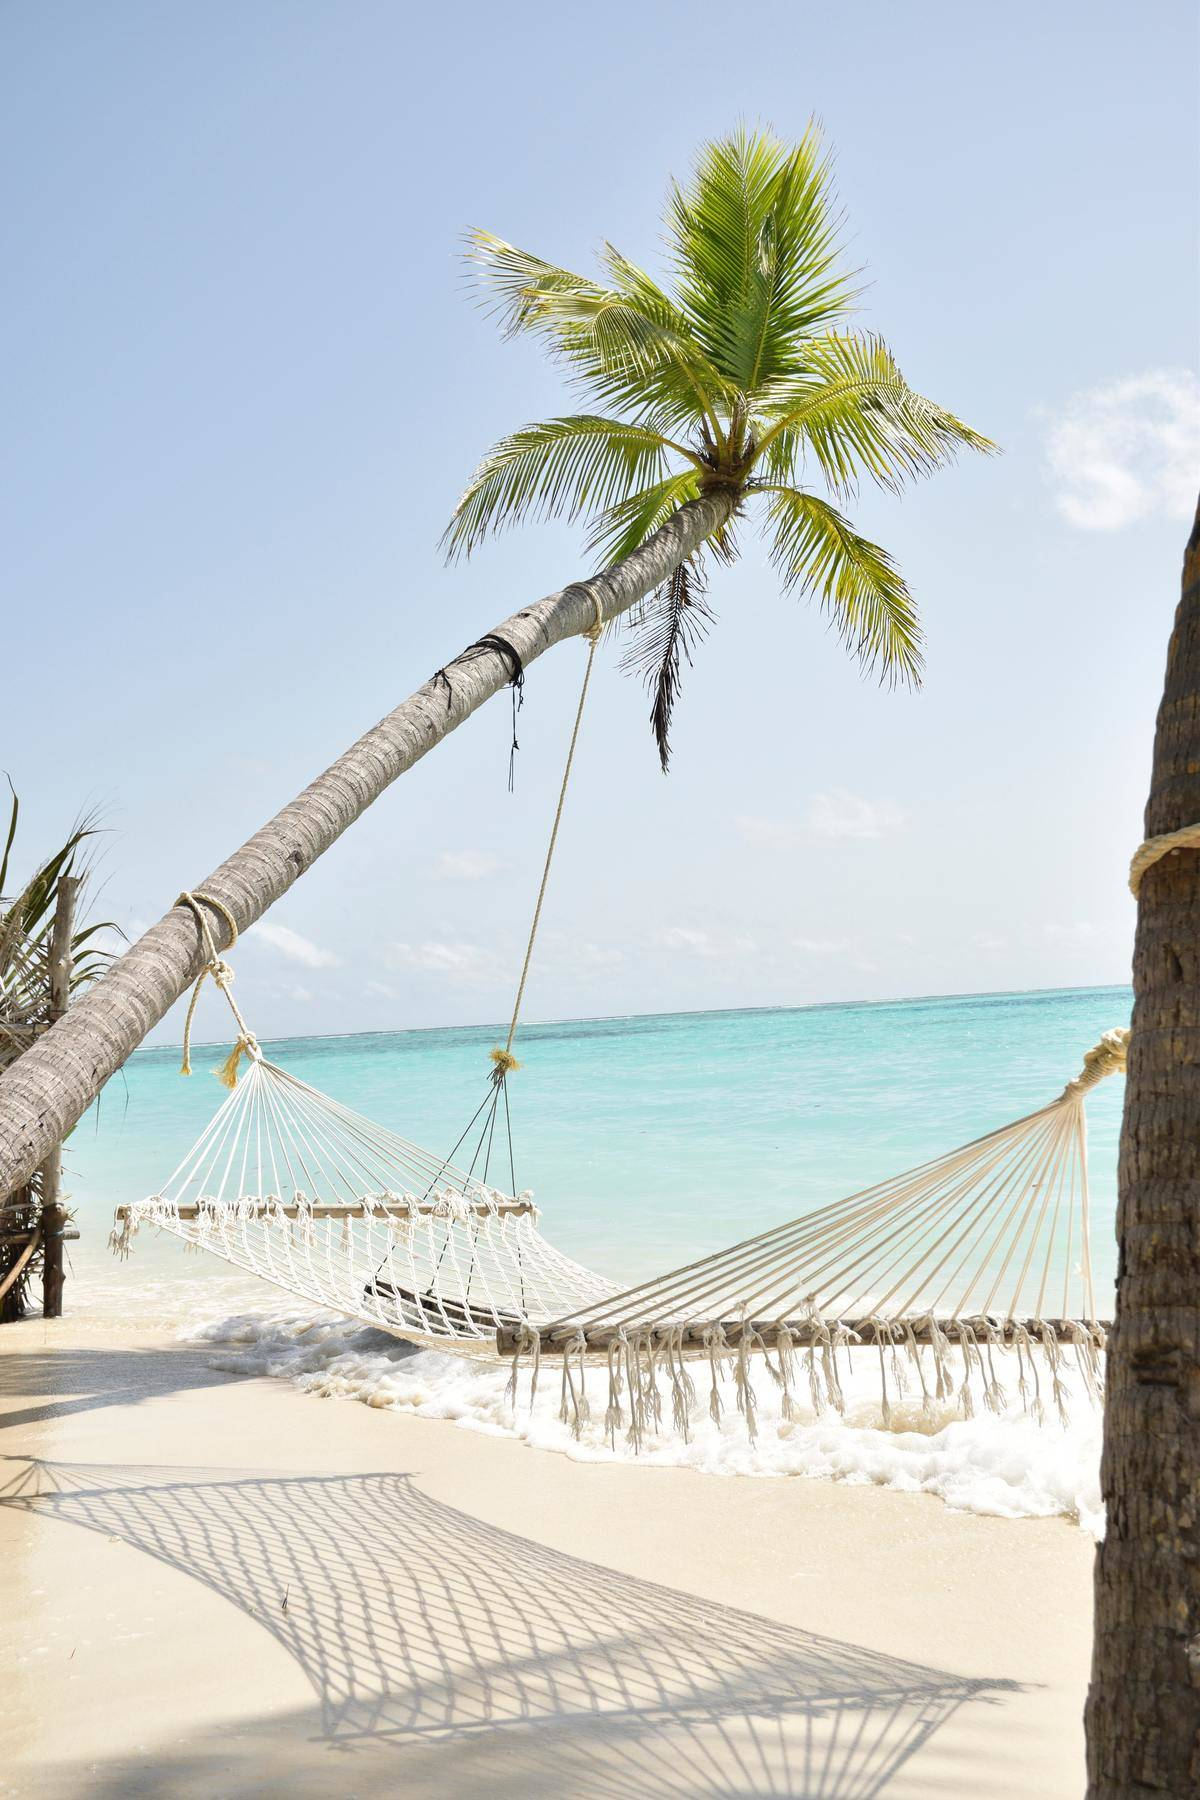 Hammock secured to palm trees